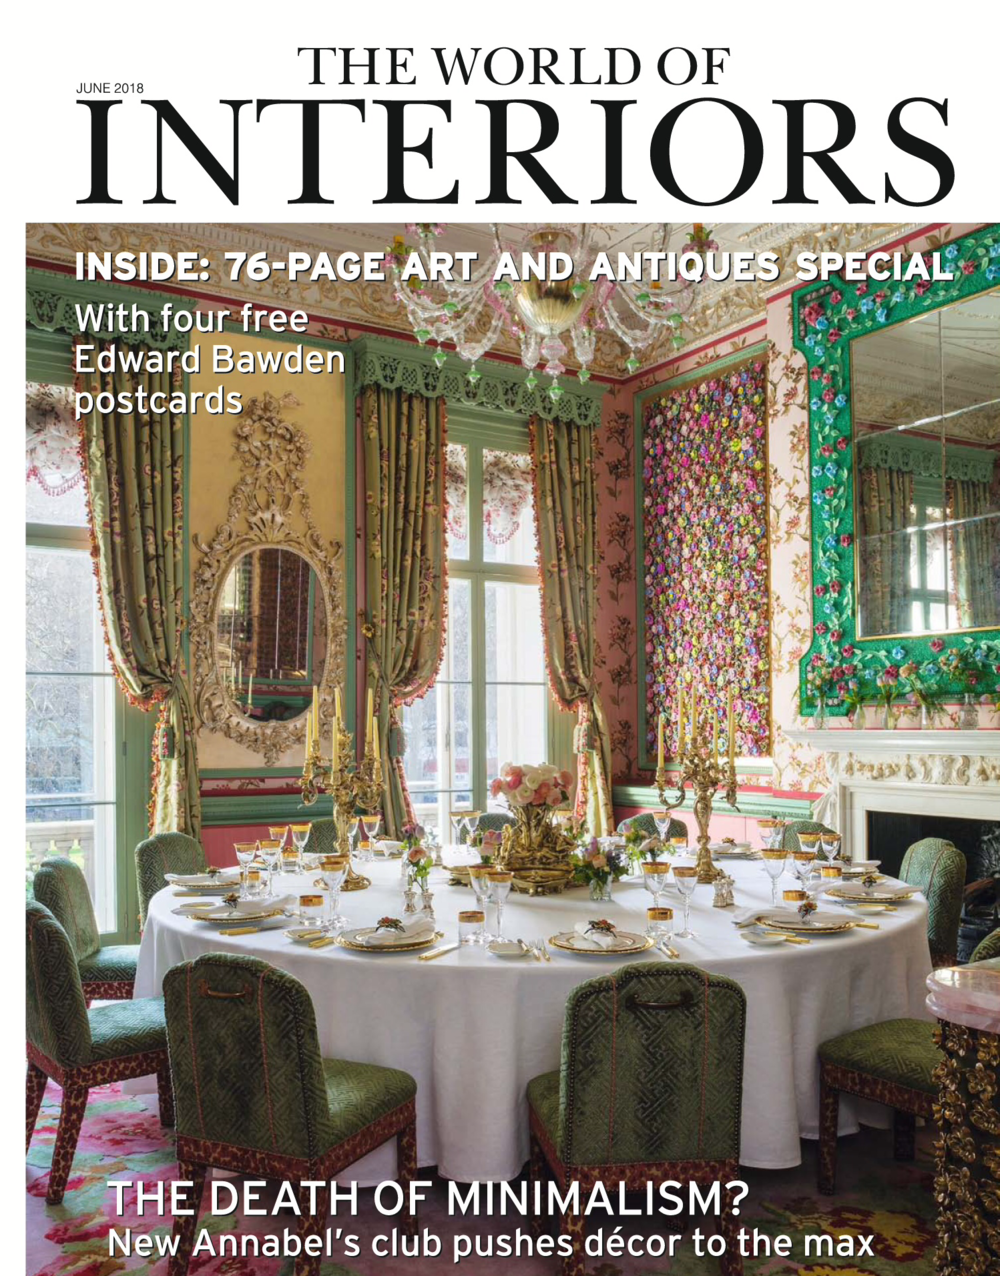 World of Interiors - June 2018